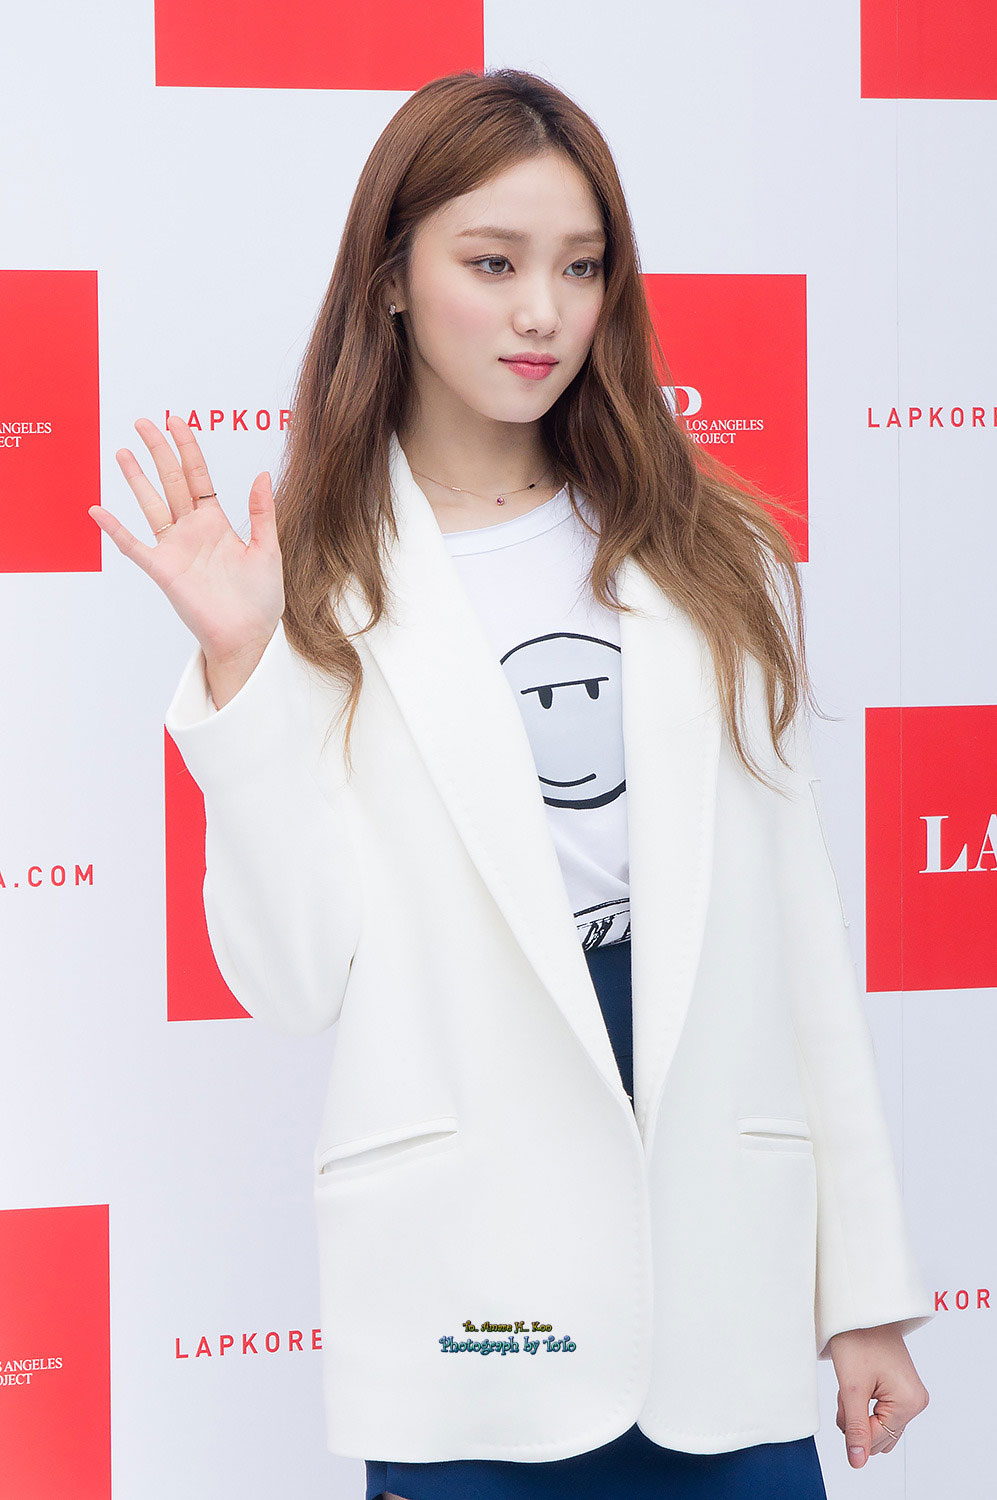 ... event for clothing brand LAP at Seoul's COEX Mall in January 2016